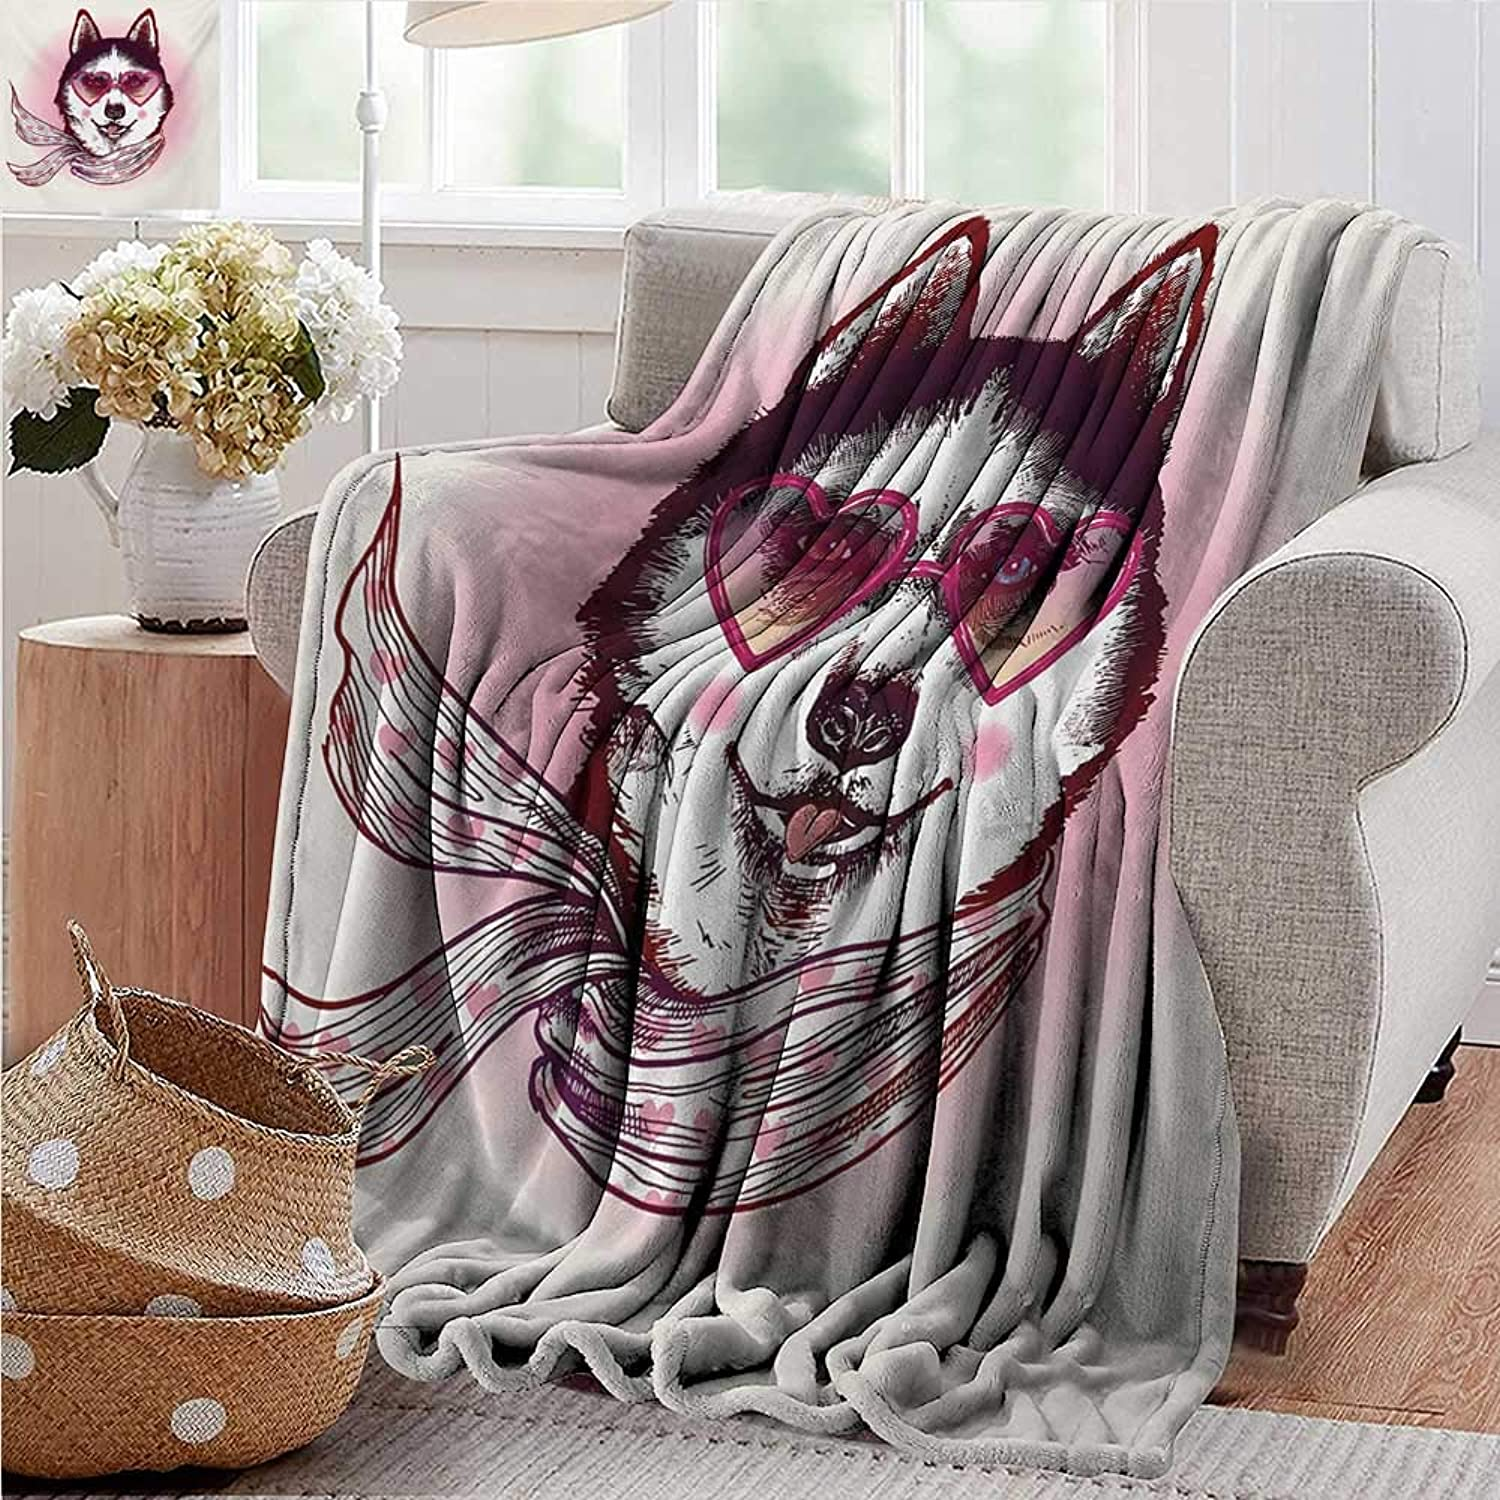 XavieraDoherty Camping Blanket,Cartoon,Hipster Husky Dog with Hearts Sunglasses and Scarf Fashion Animal Art Print,Pink Cream Black,Flannel Blankets Made with Plush Microfiber 35 x60